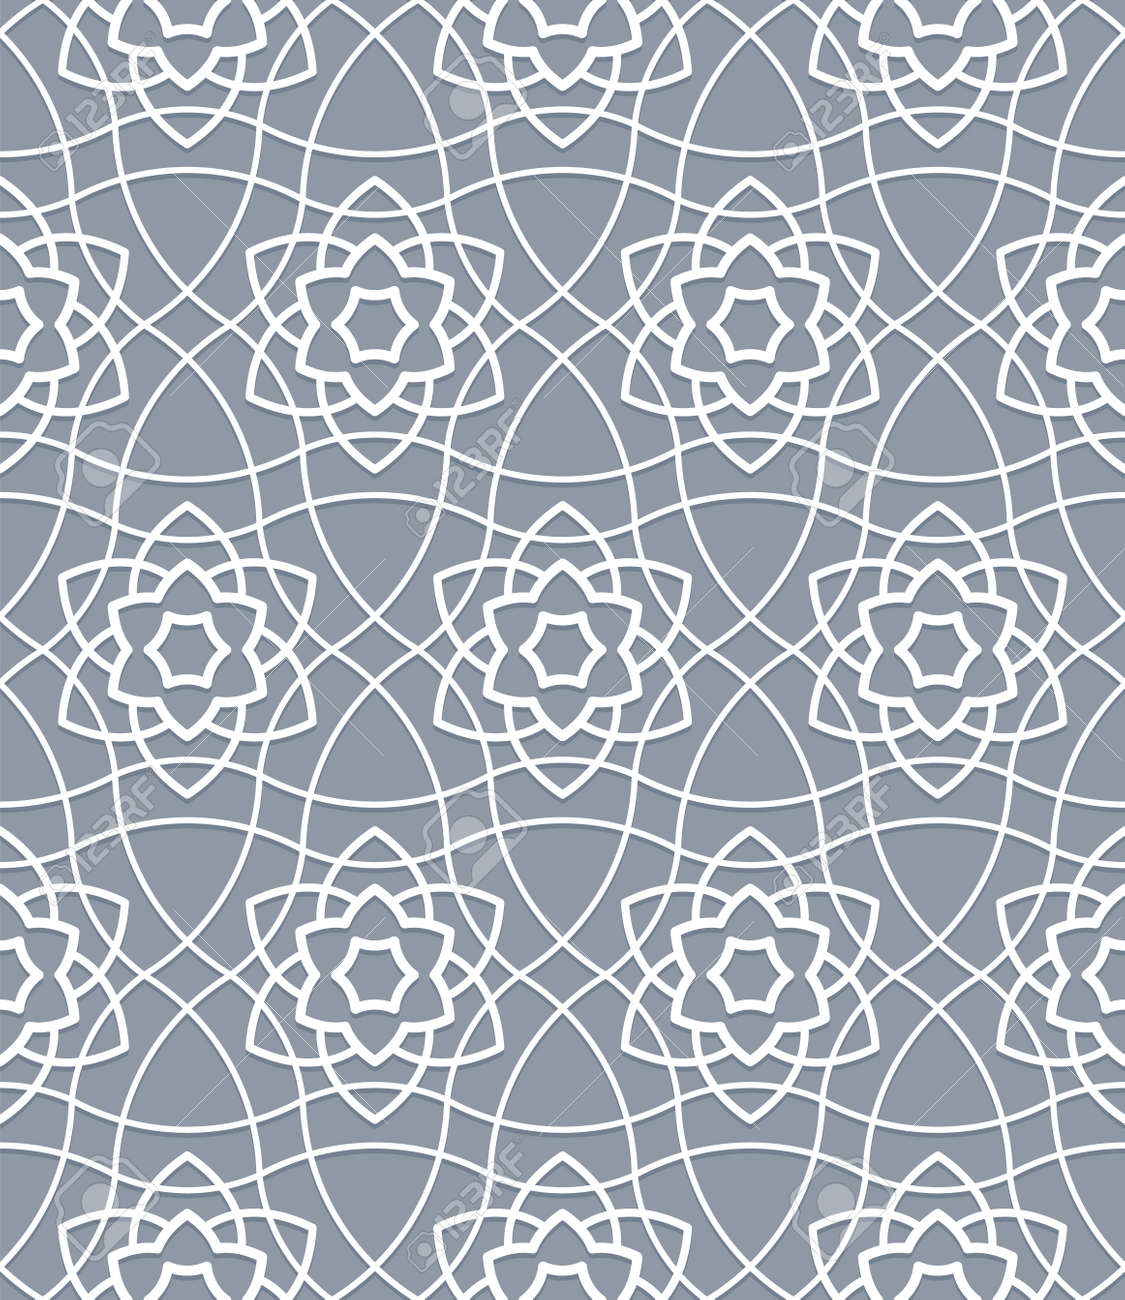 Traditional oriental muslim pattern grid geometric interlaced branches seamless curved ornament - 171000599